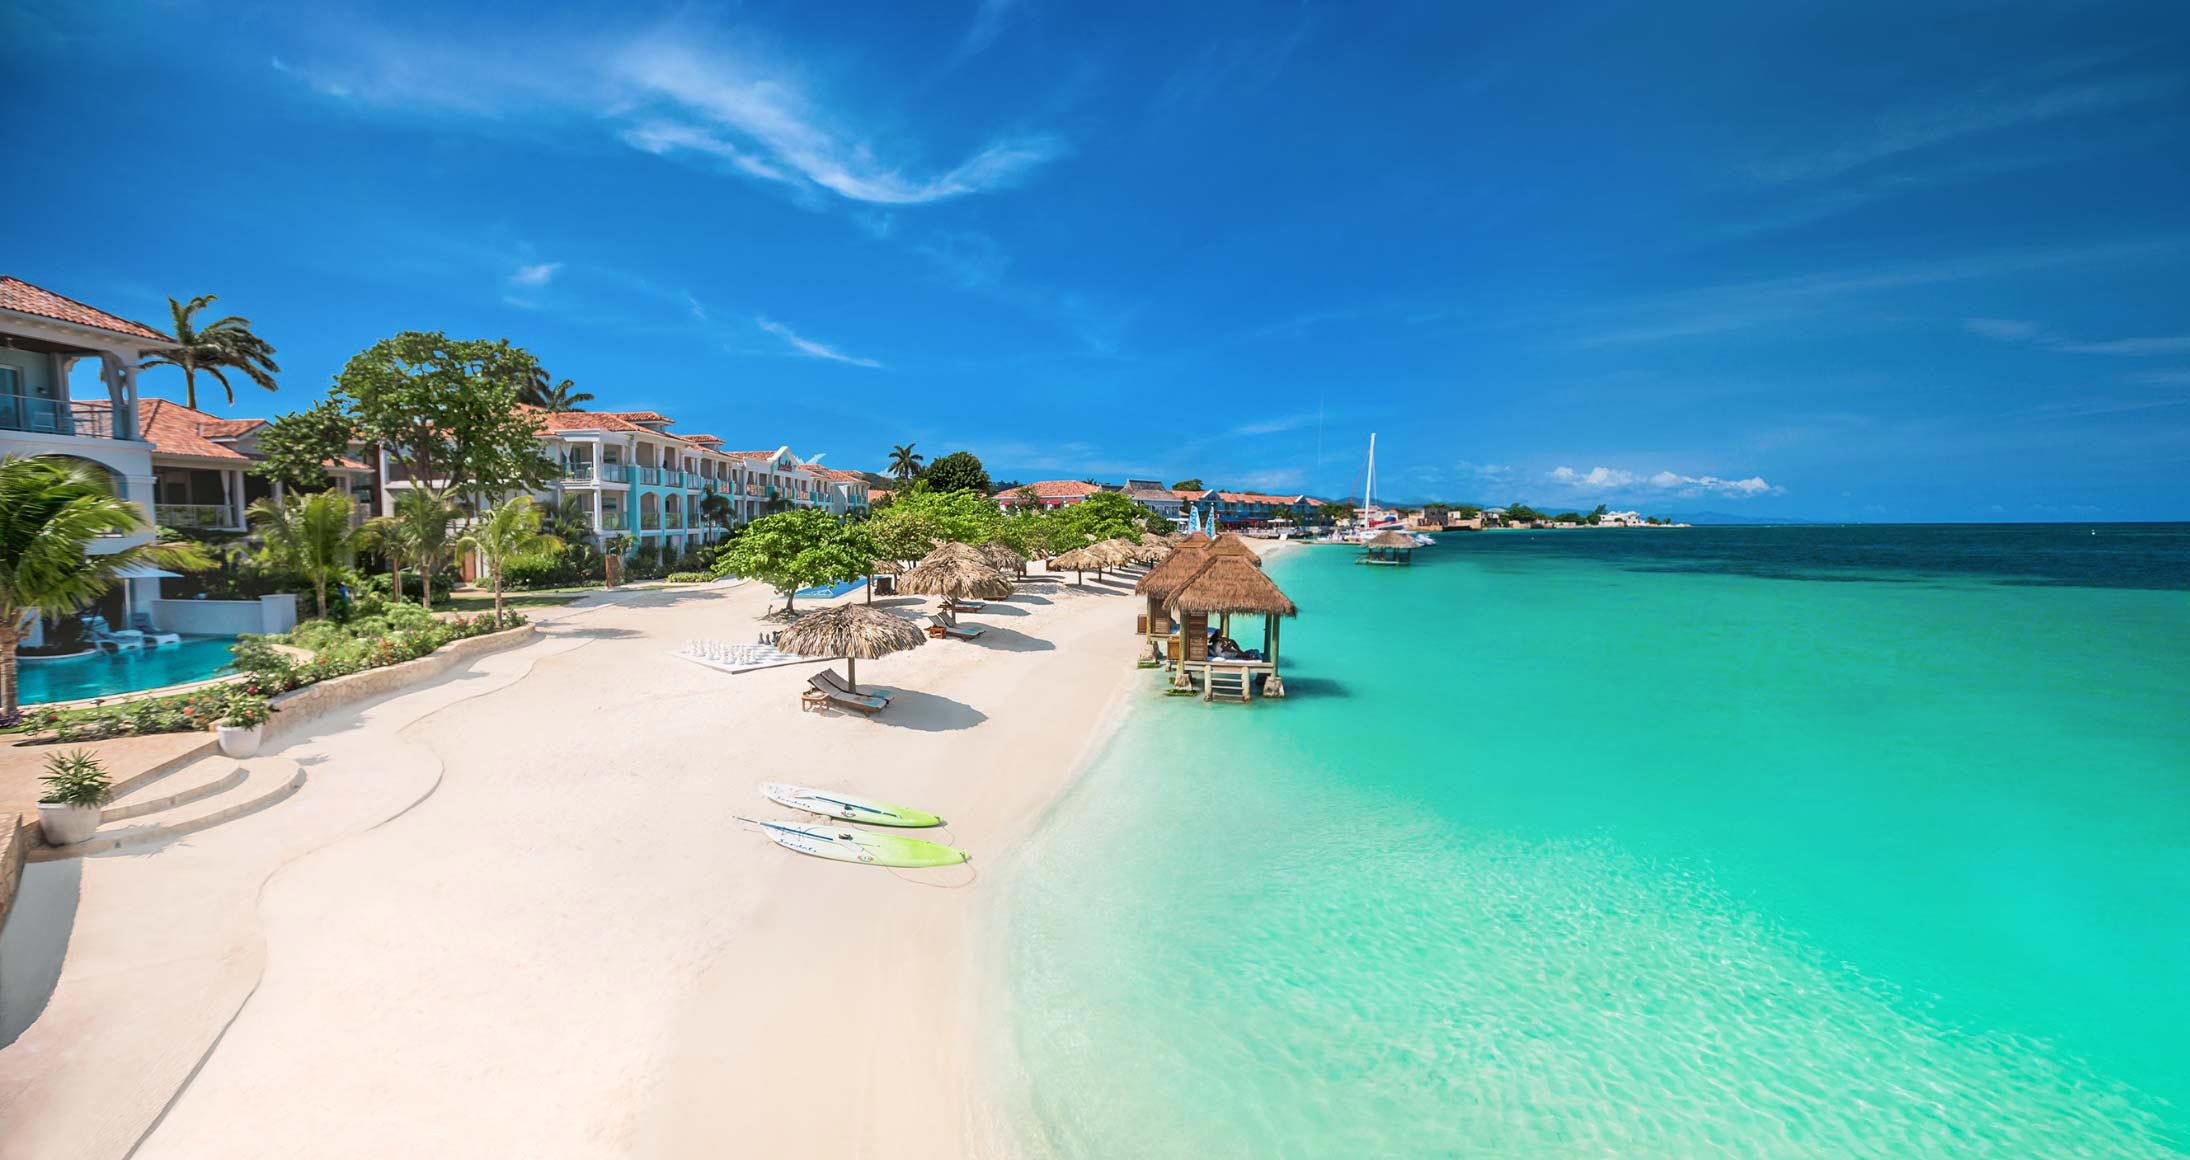 Jamaica: Sandals denies reports of covered up sexual ...